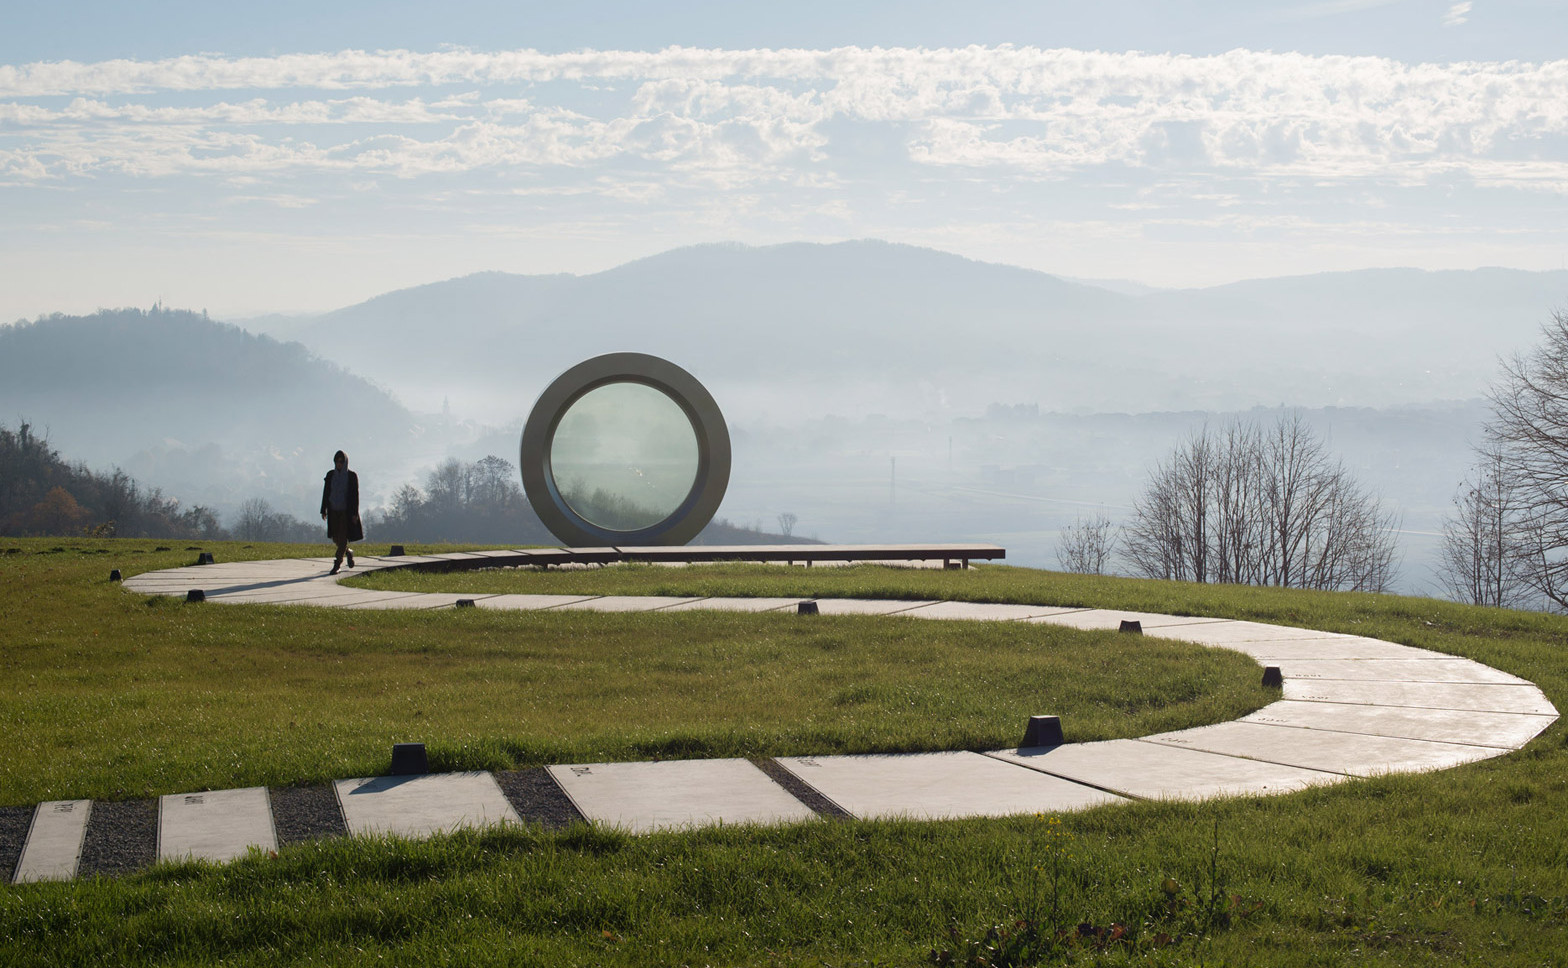 broken-landscape-camera-lens-memorial-nfo-photographer-gordan-lederer_dezeen_1568_7